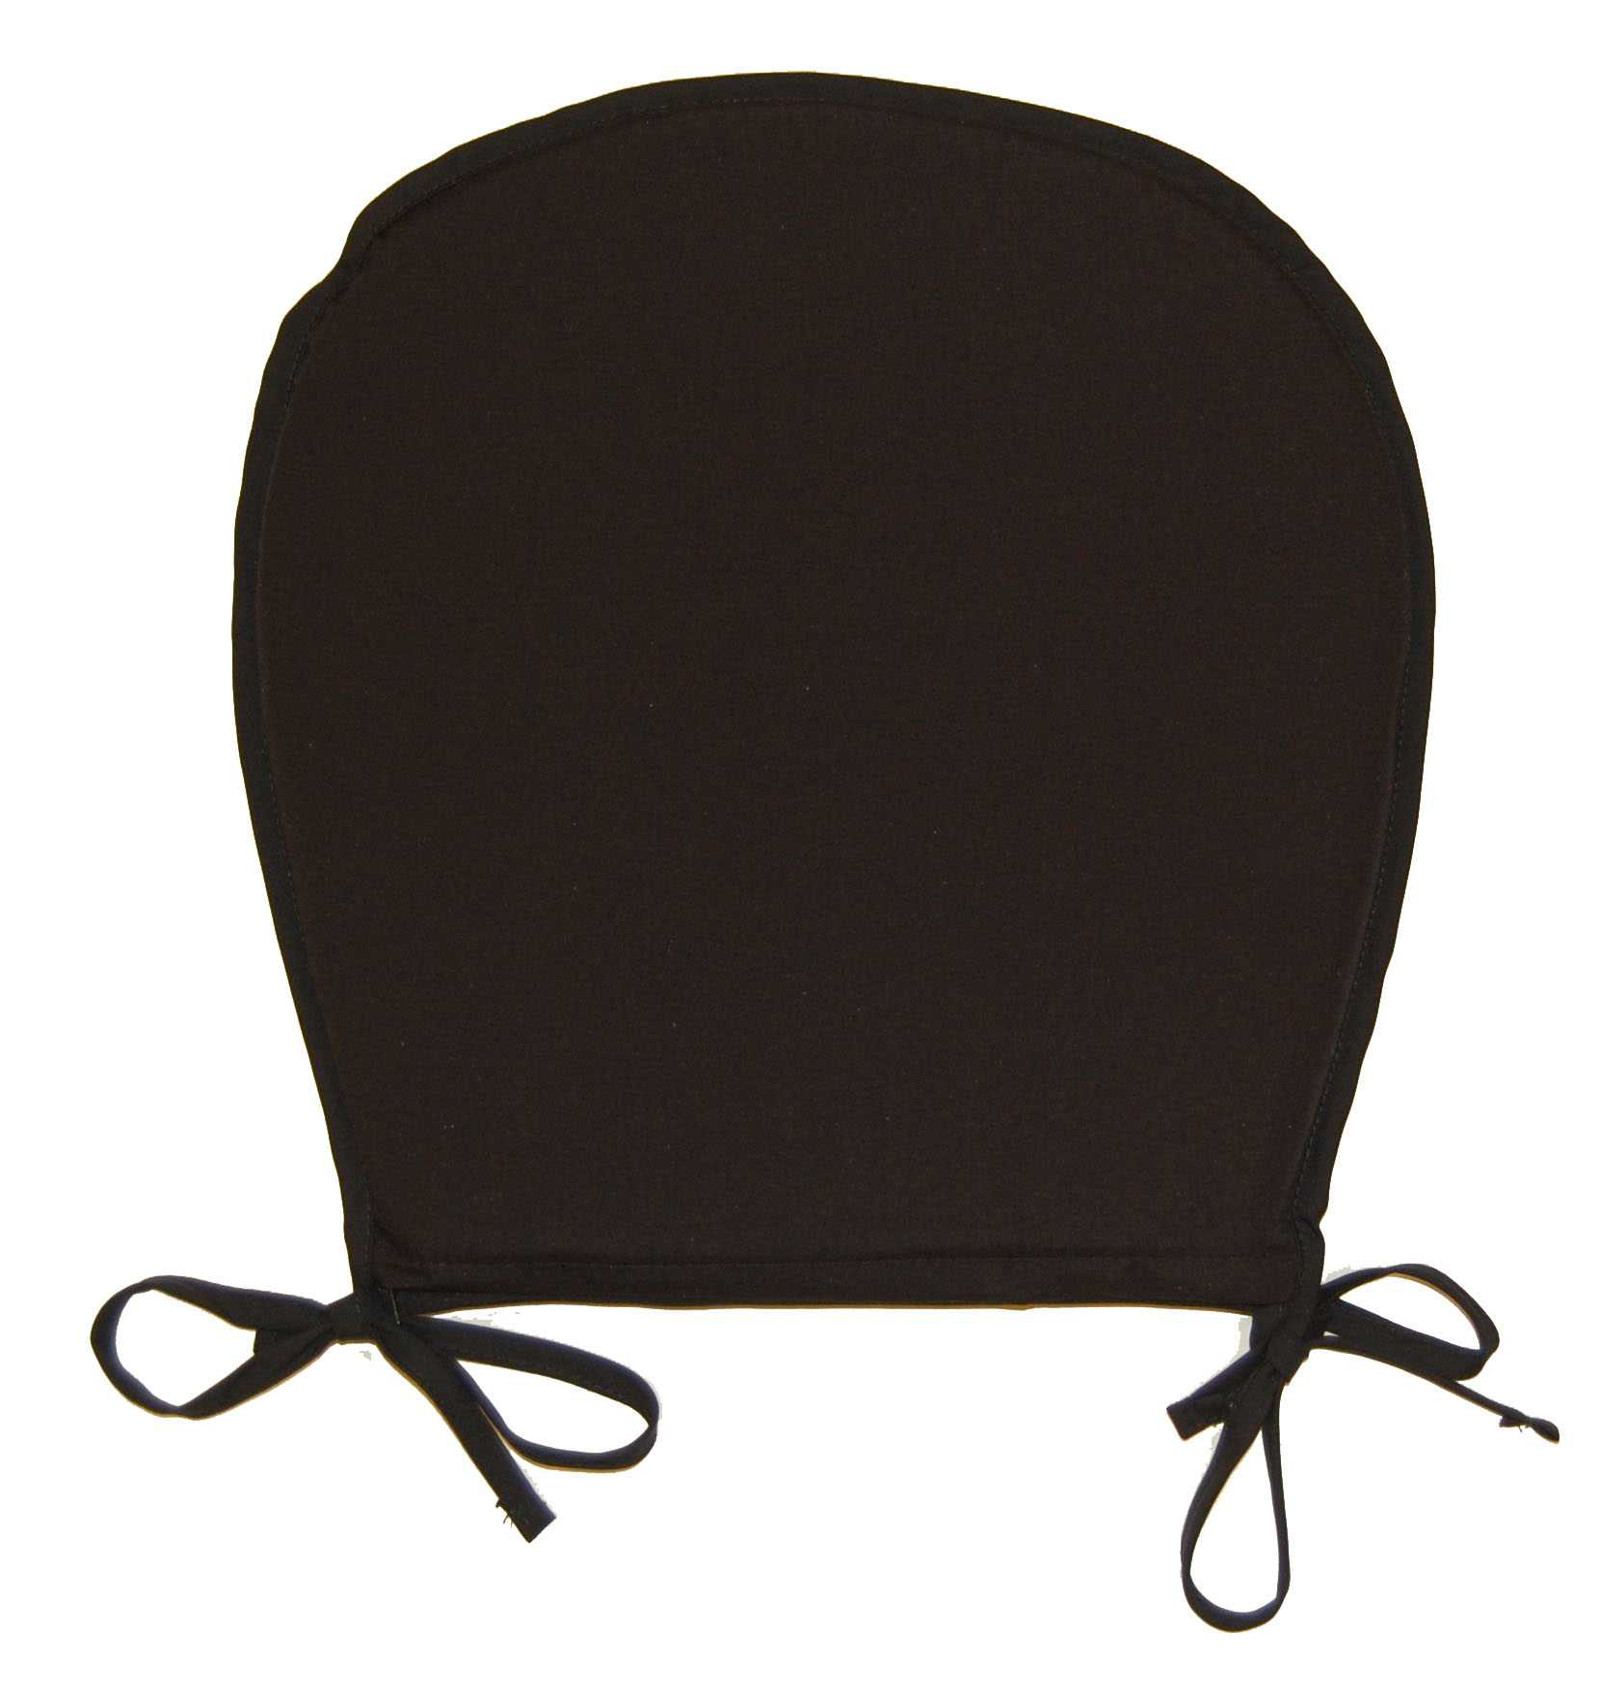 Seat Cushions For Dining Room Chairs Round Kitchen Seat Pad Garden Furniture Dining Room Chair